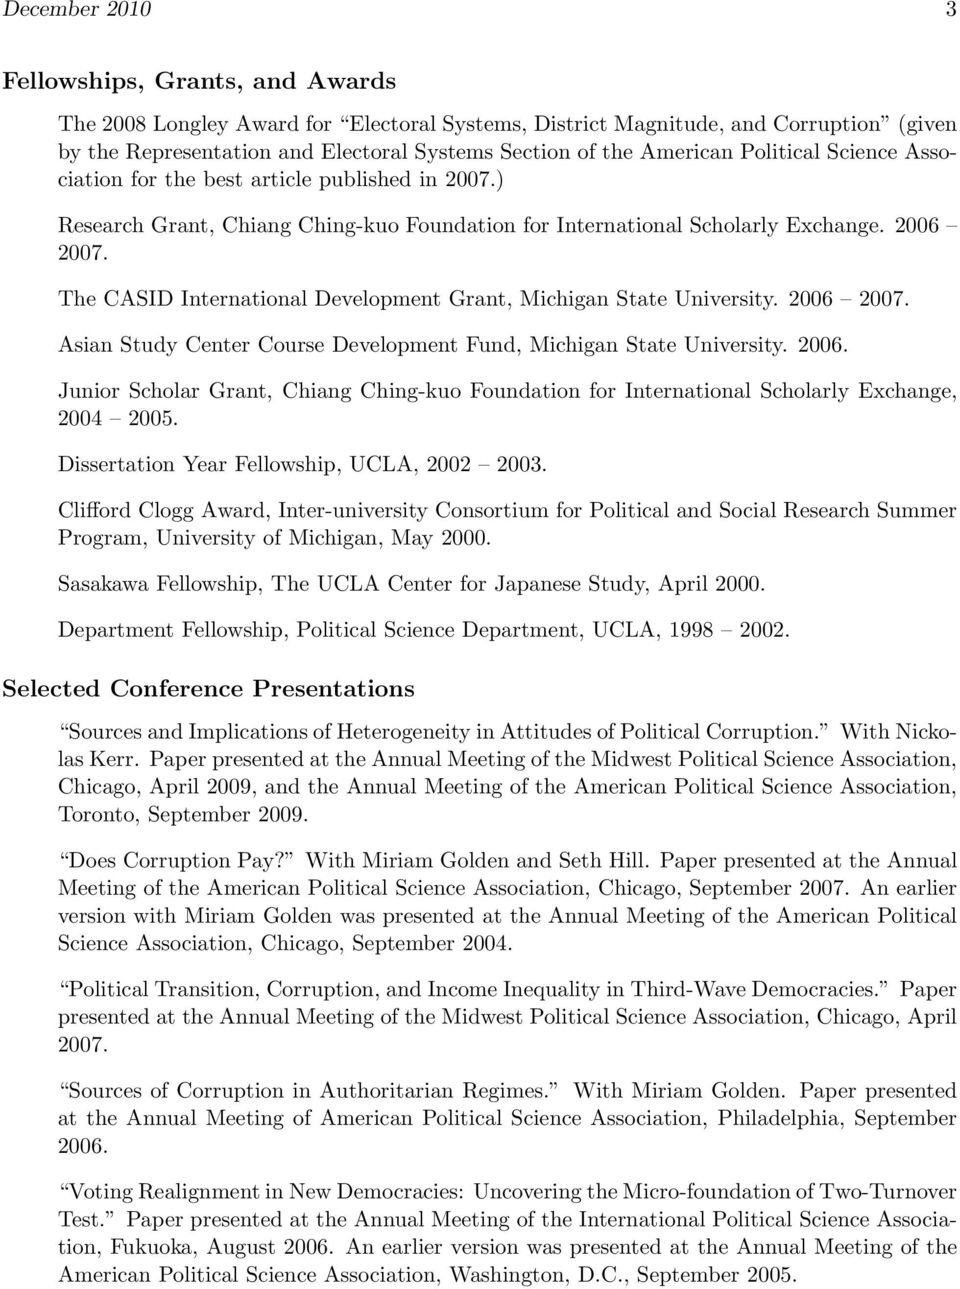 The CASID International Development Grant, Michigan State University. 2006 2007. Asian Study Center Course Development Fund, Michigan State University. 2006. Junior Scholar Grant, Chiang Ching-kuo Foundation for International Scholarly Exchange, 2004 2005.